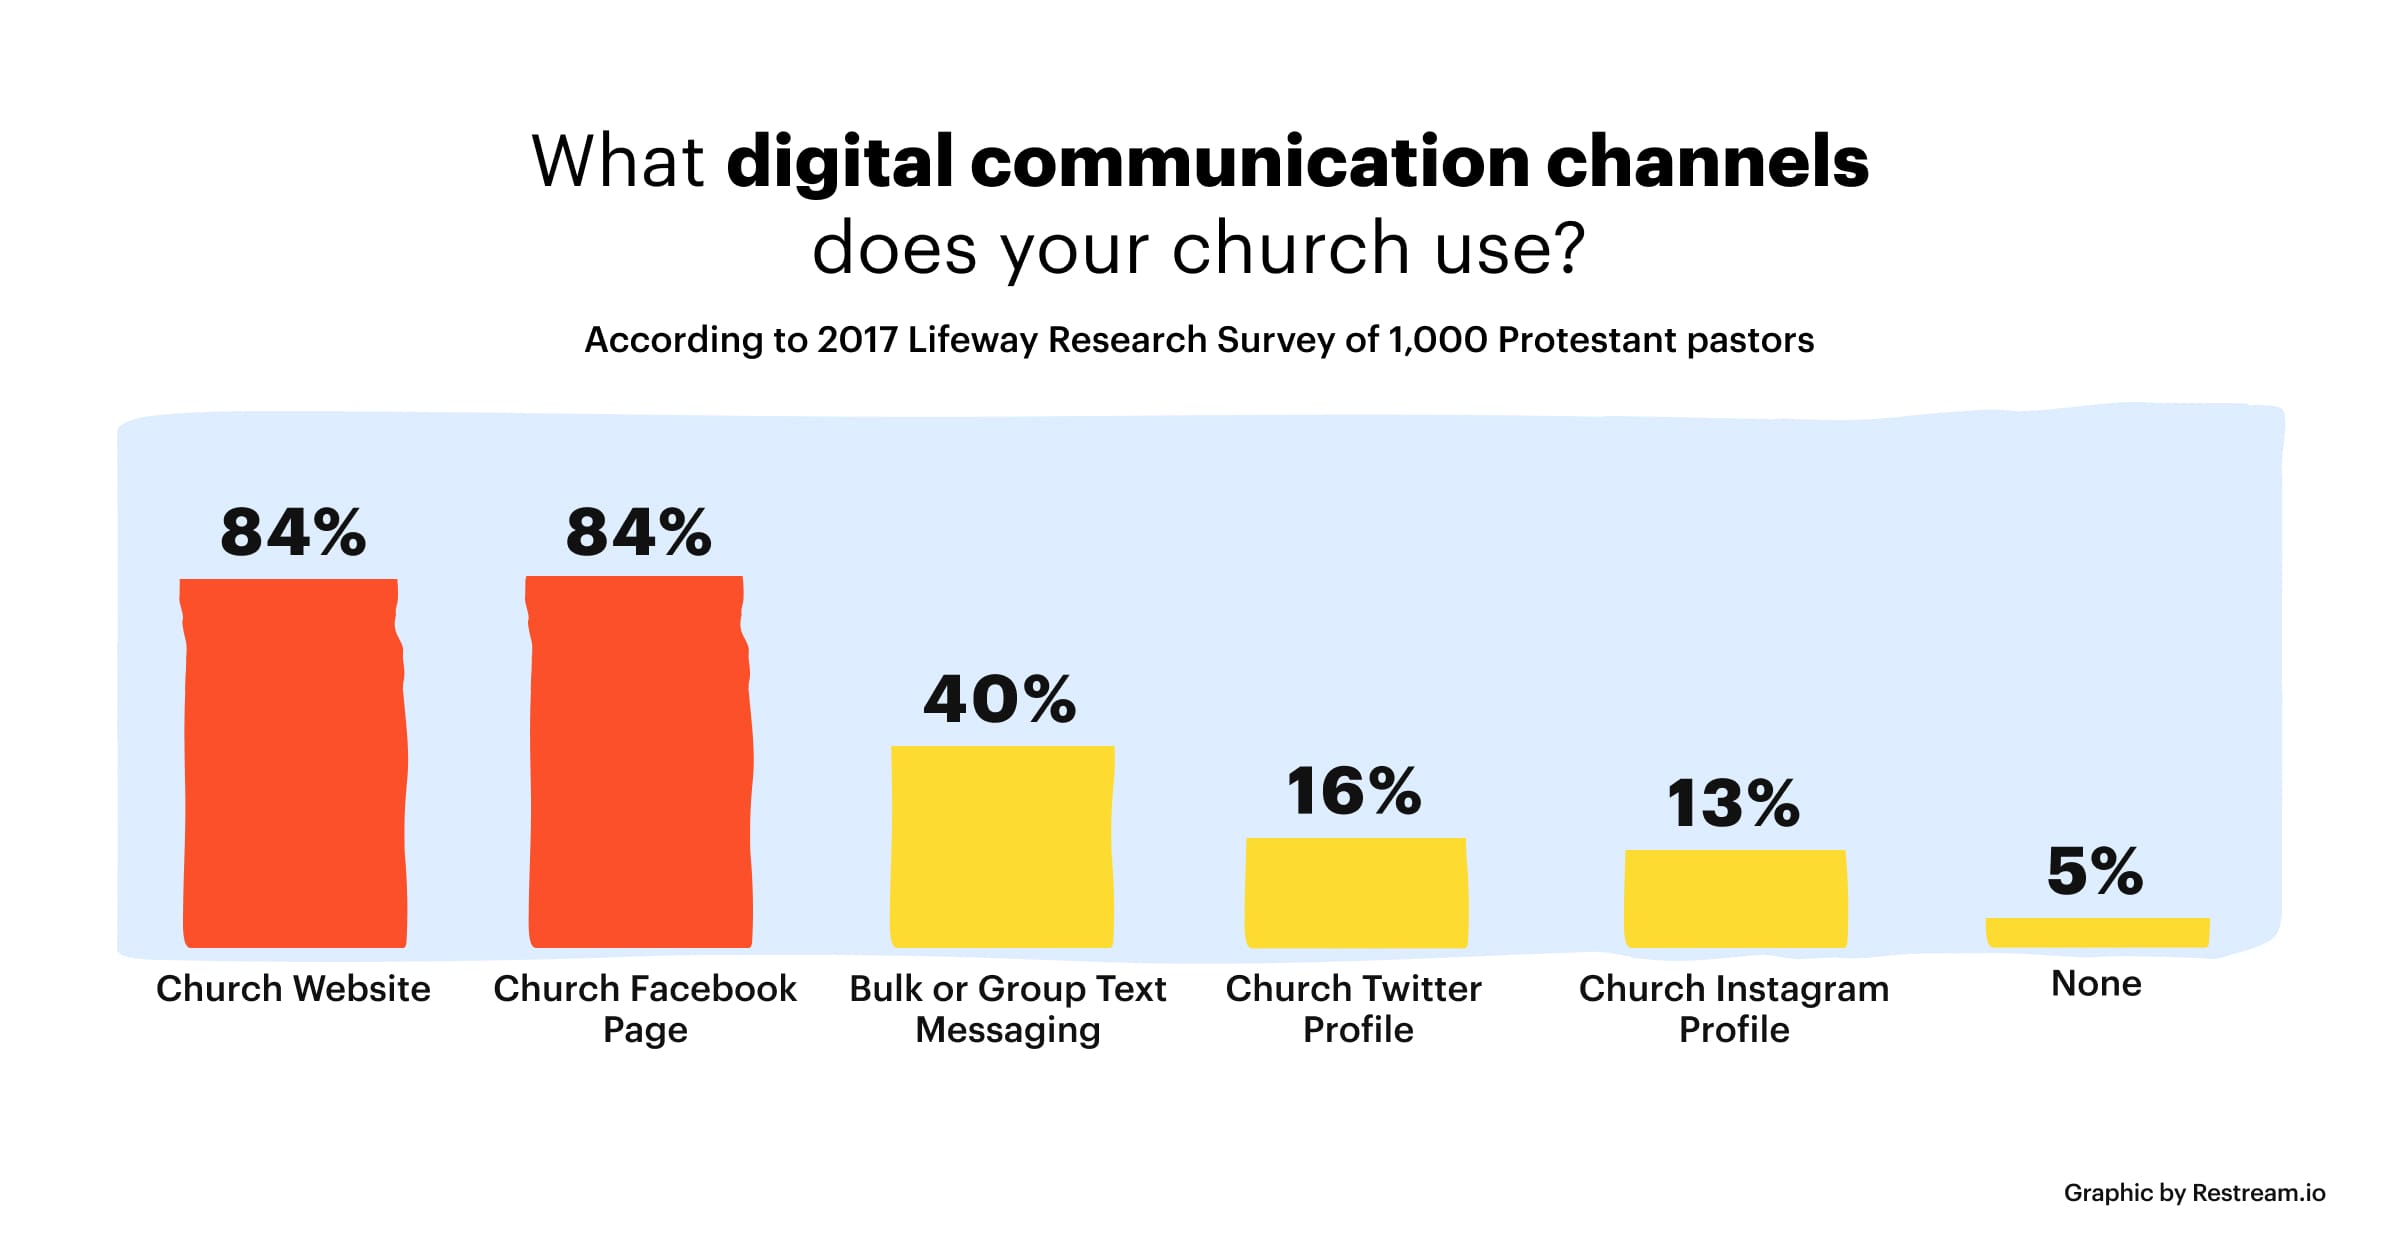 Why digital communication channels does your church use?